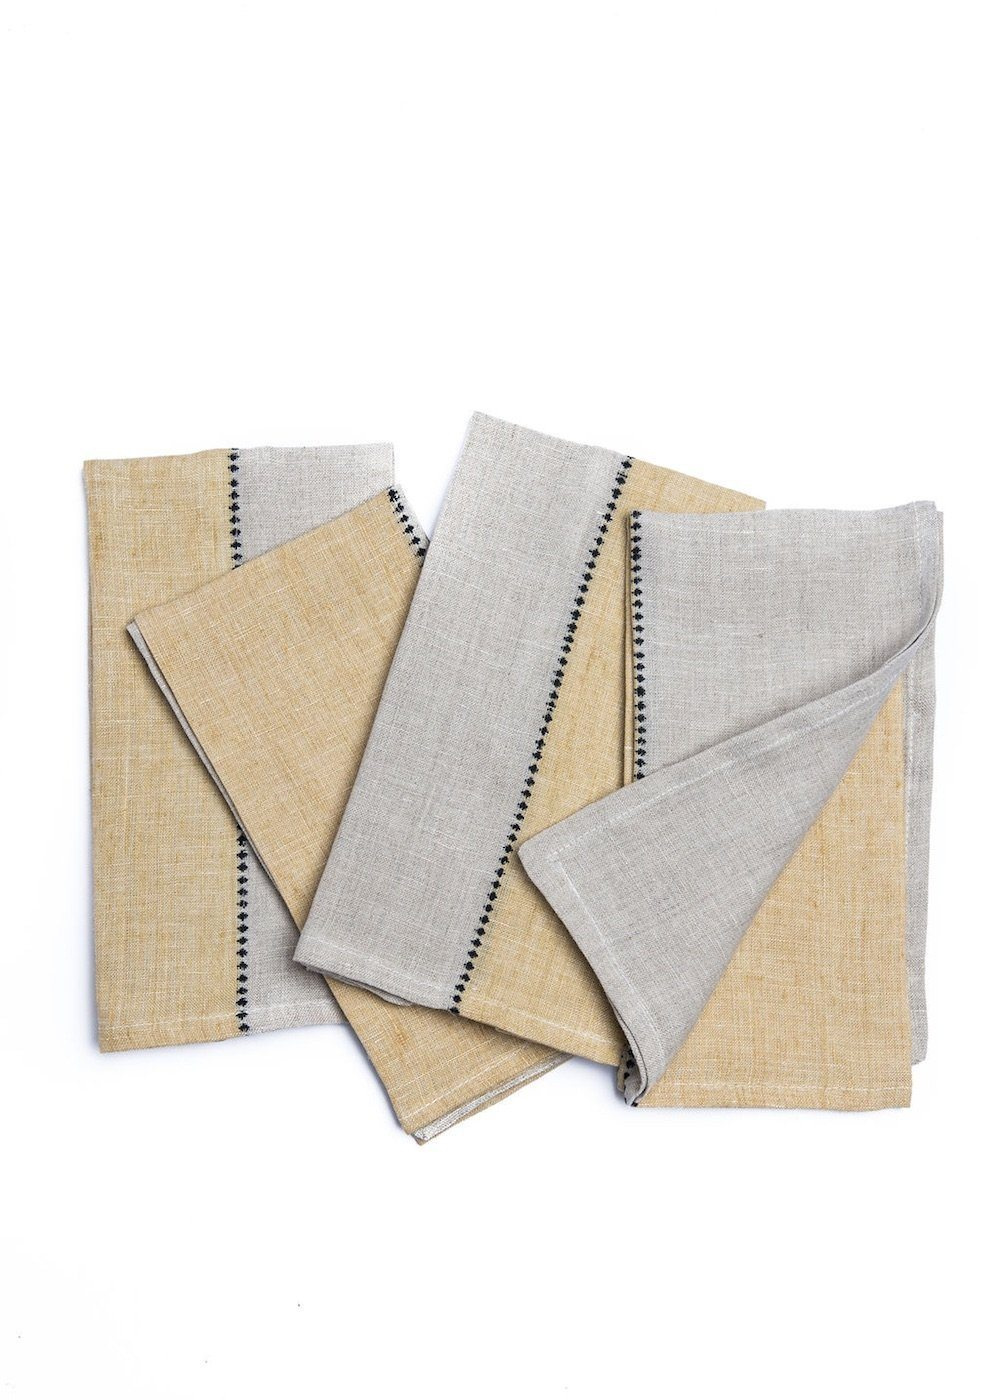 Bloom & Give Mitti Napkins Kitchen & Tabletop Bloom & Give